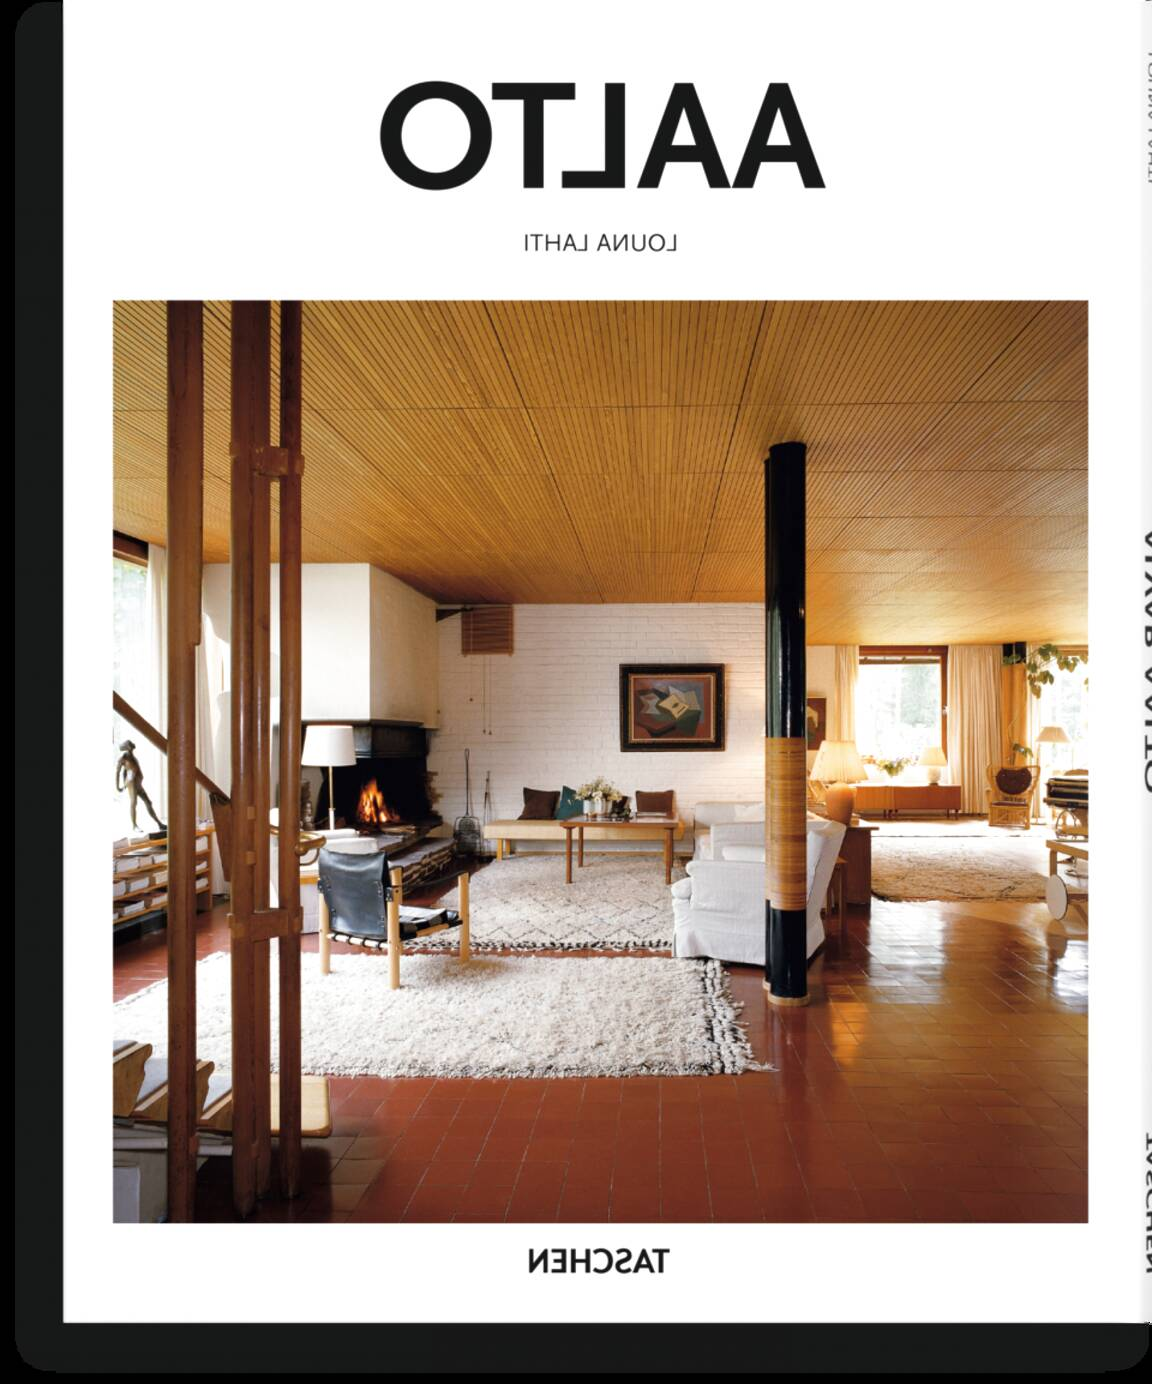 aalto d'occasion